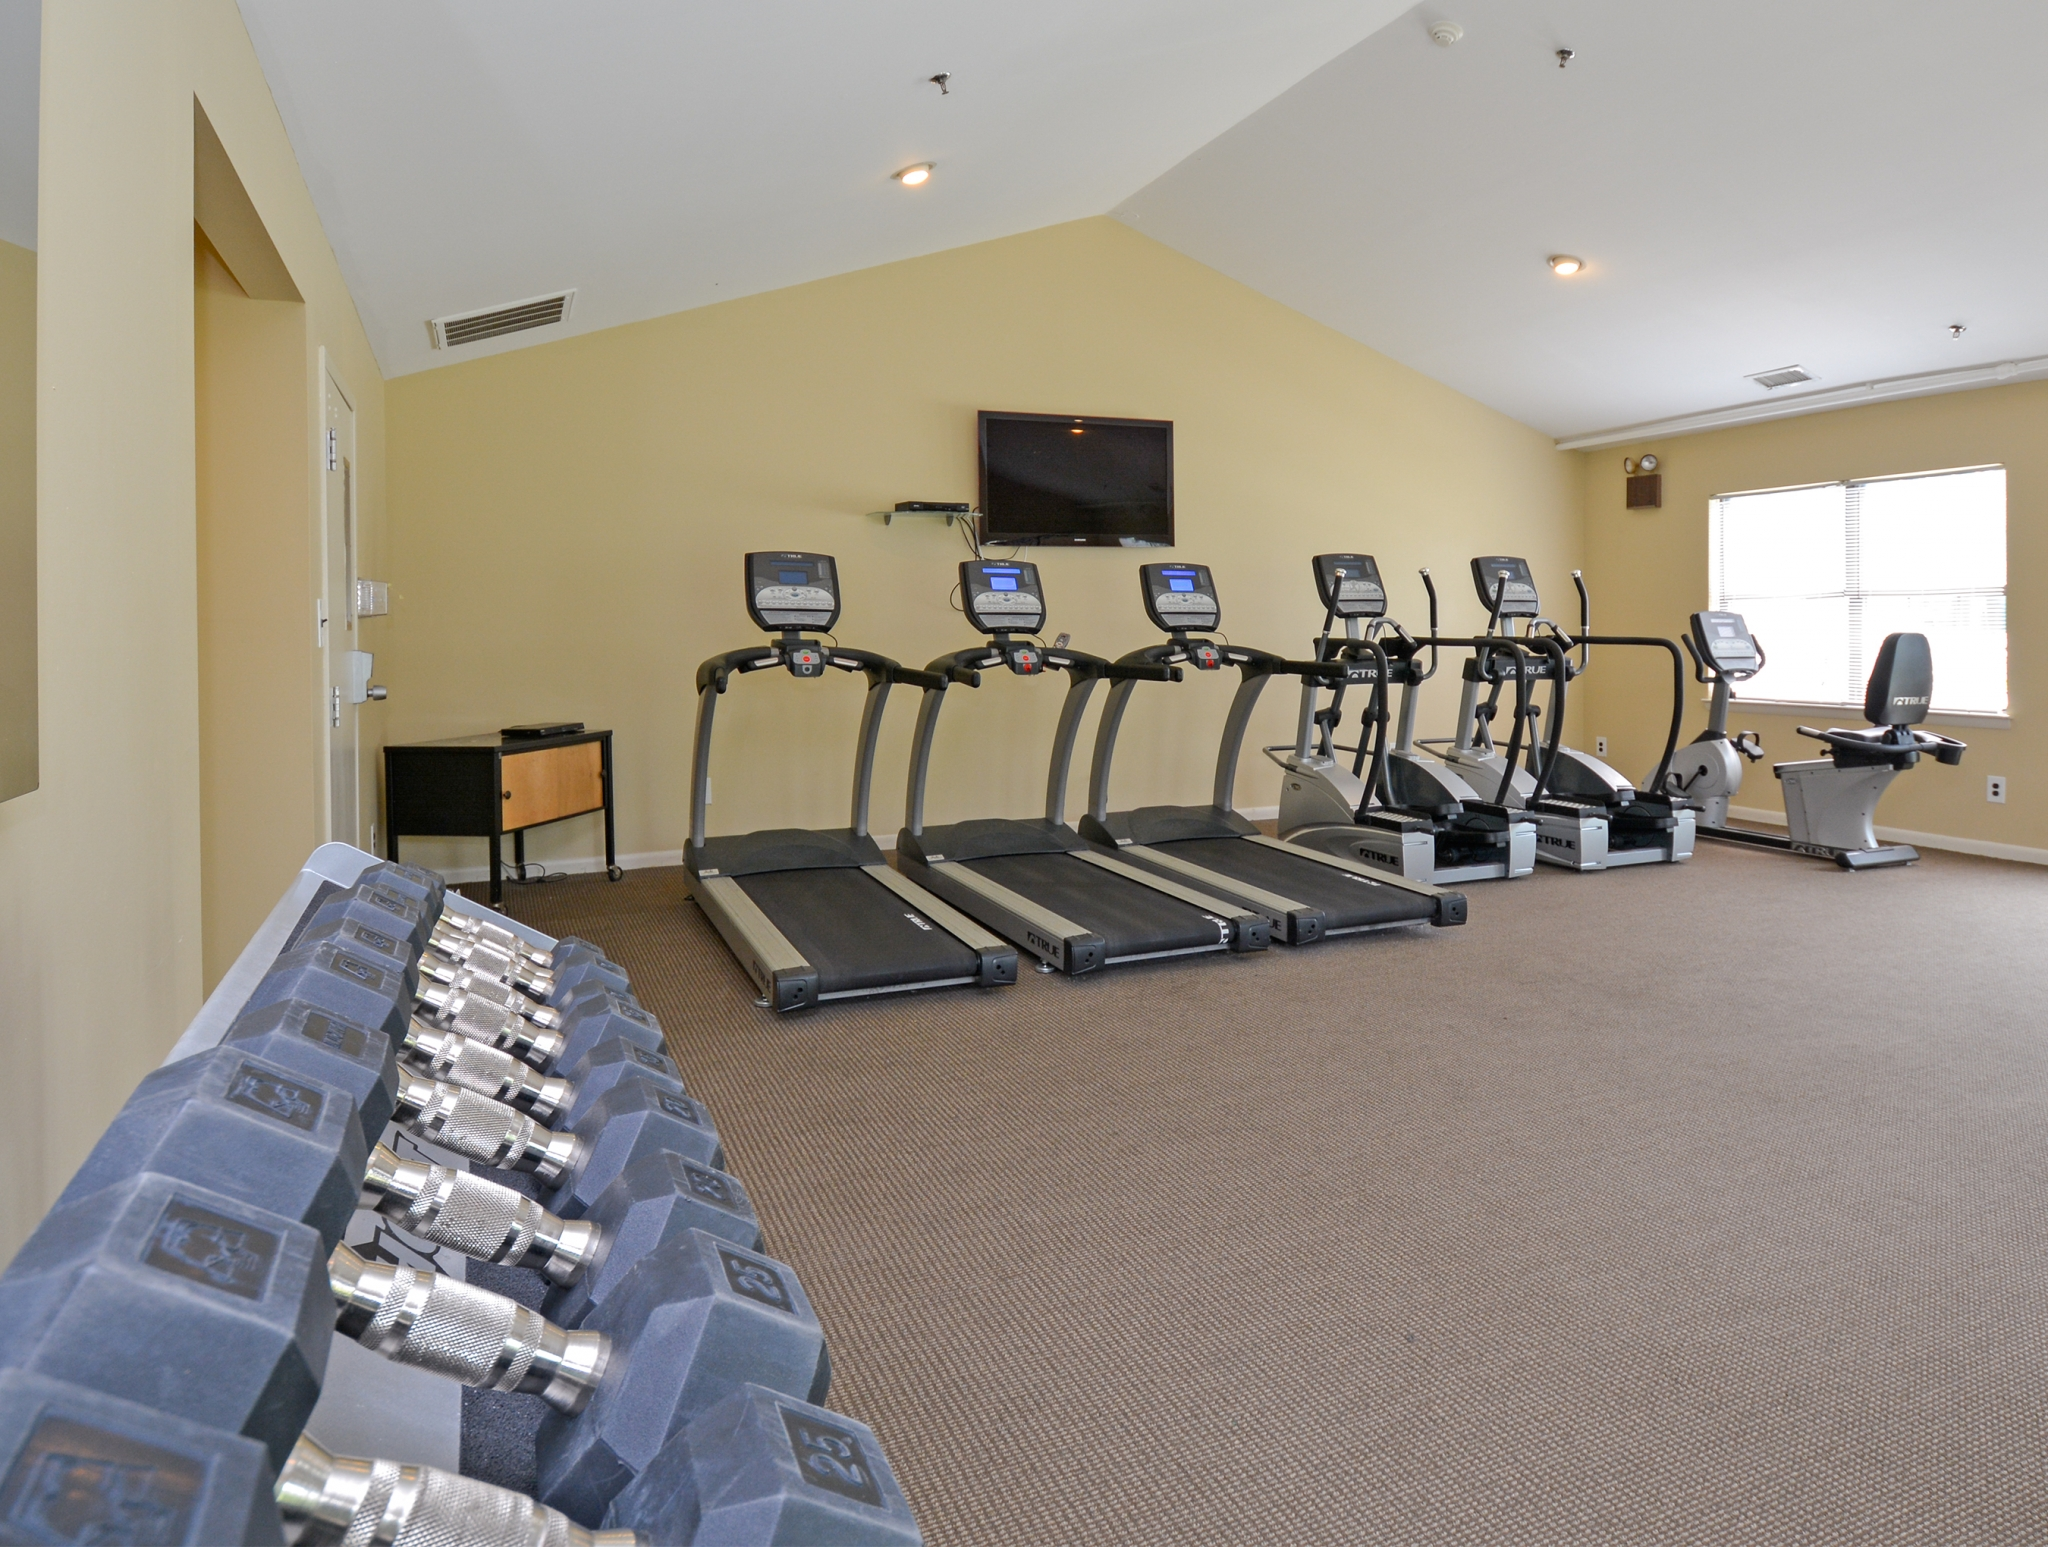 Willow Ridge Village Fitness Center with Dumbbells and Treadmill Machines | Apartments In Marlton NJ